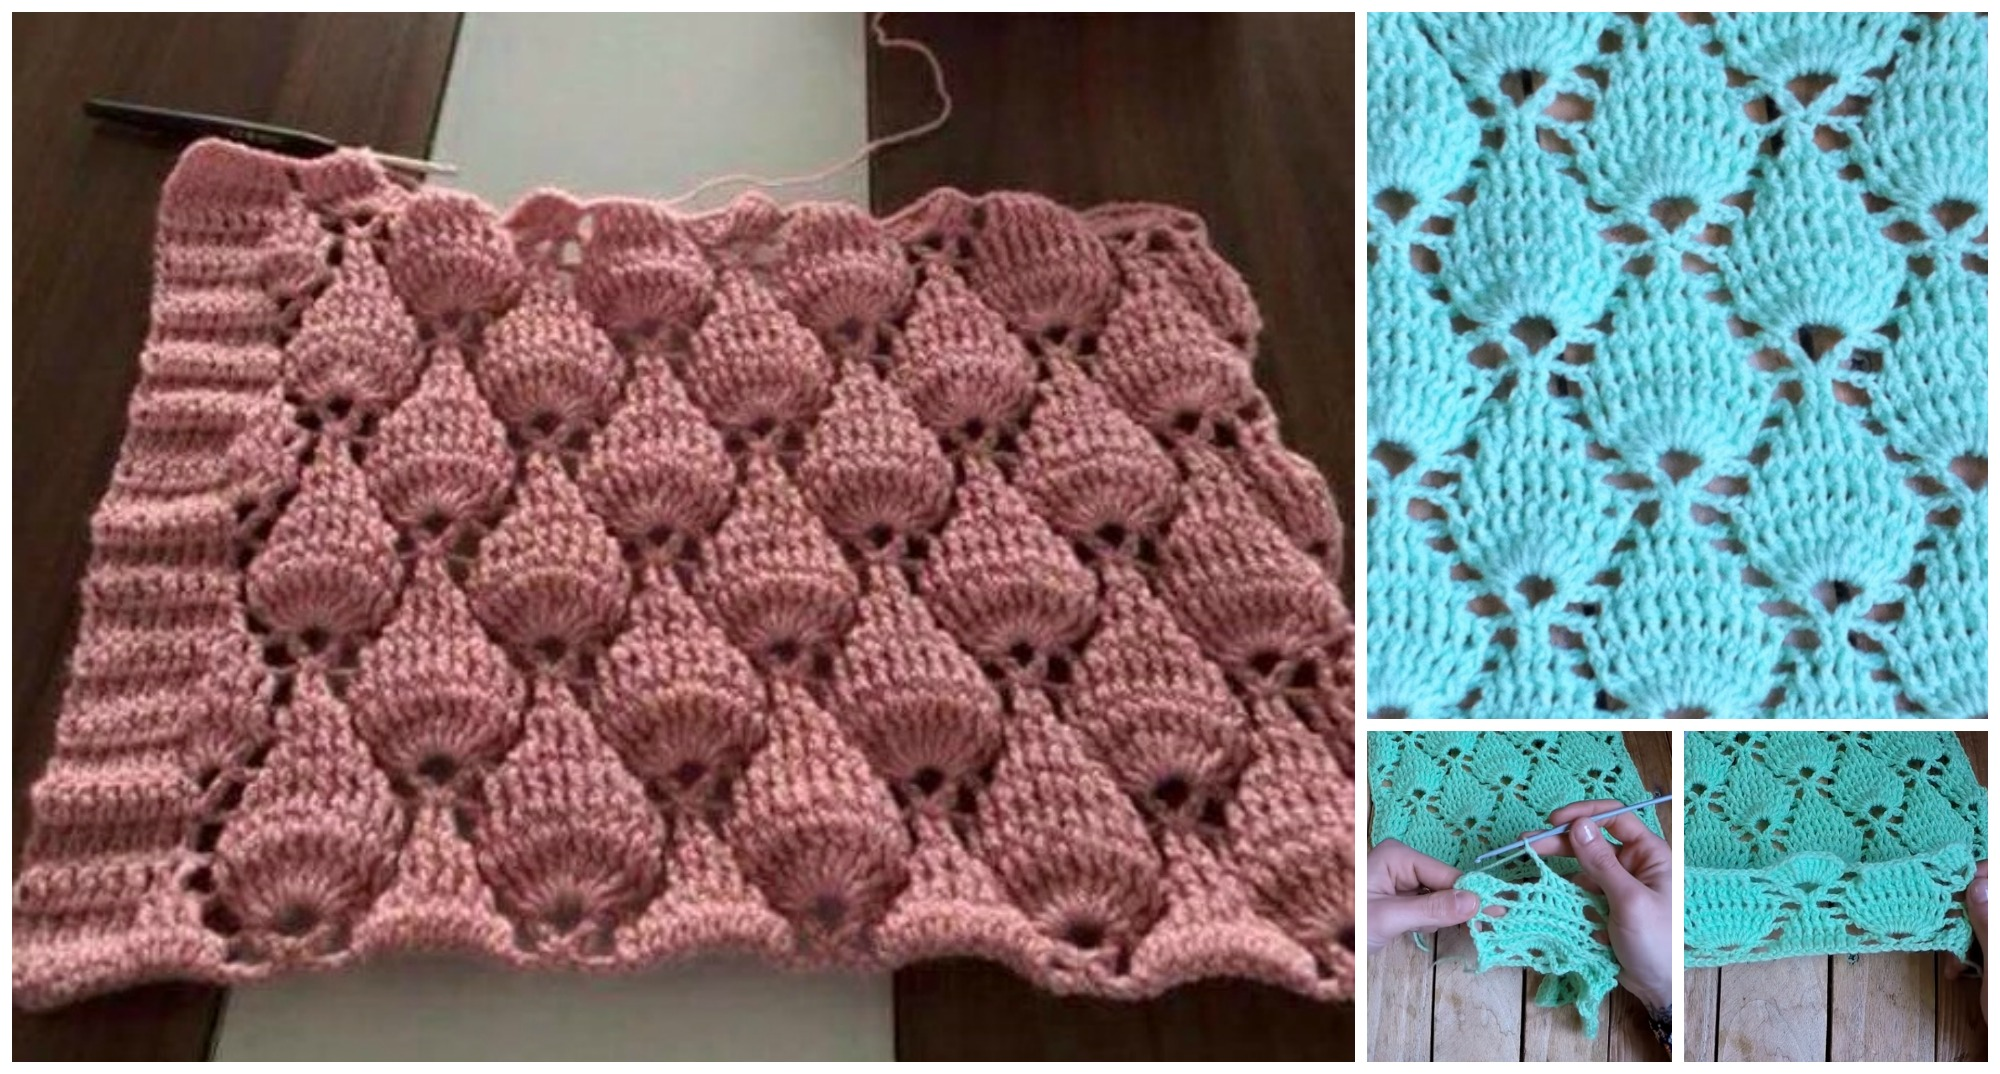 Crochet Fantasy : How To Crochet Fantasy Stitch - PRETTY IDEAS